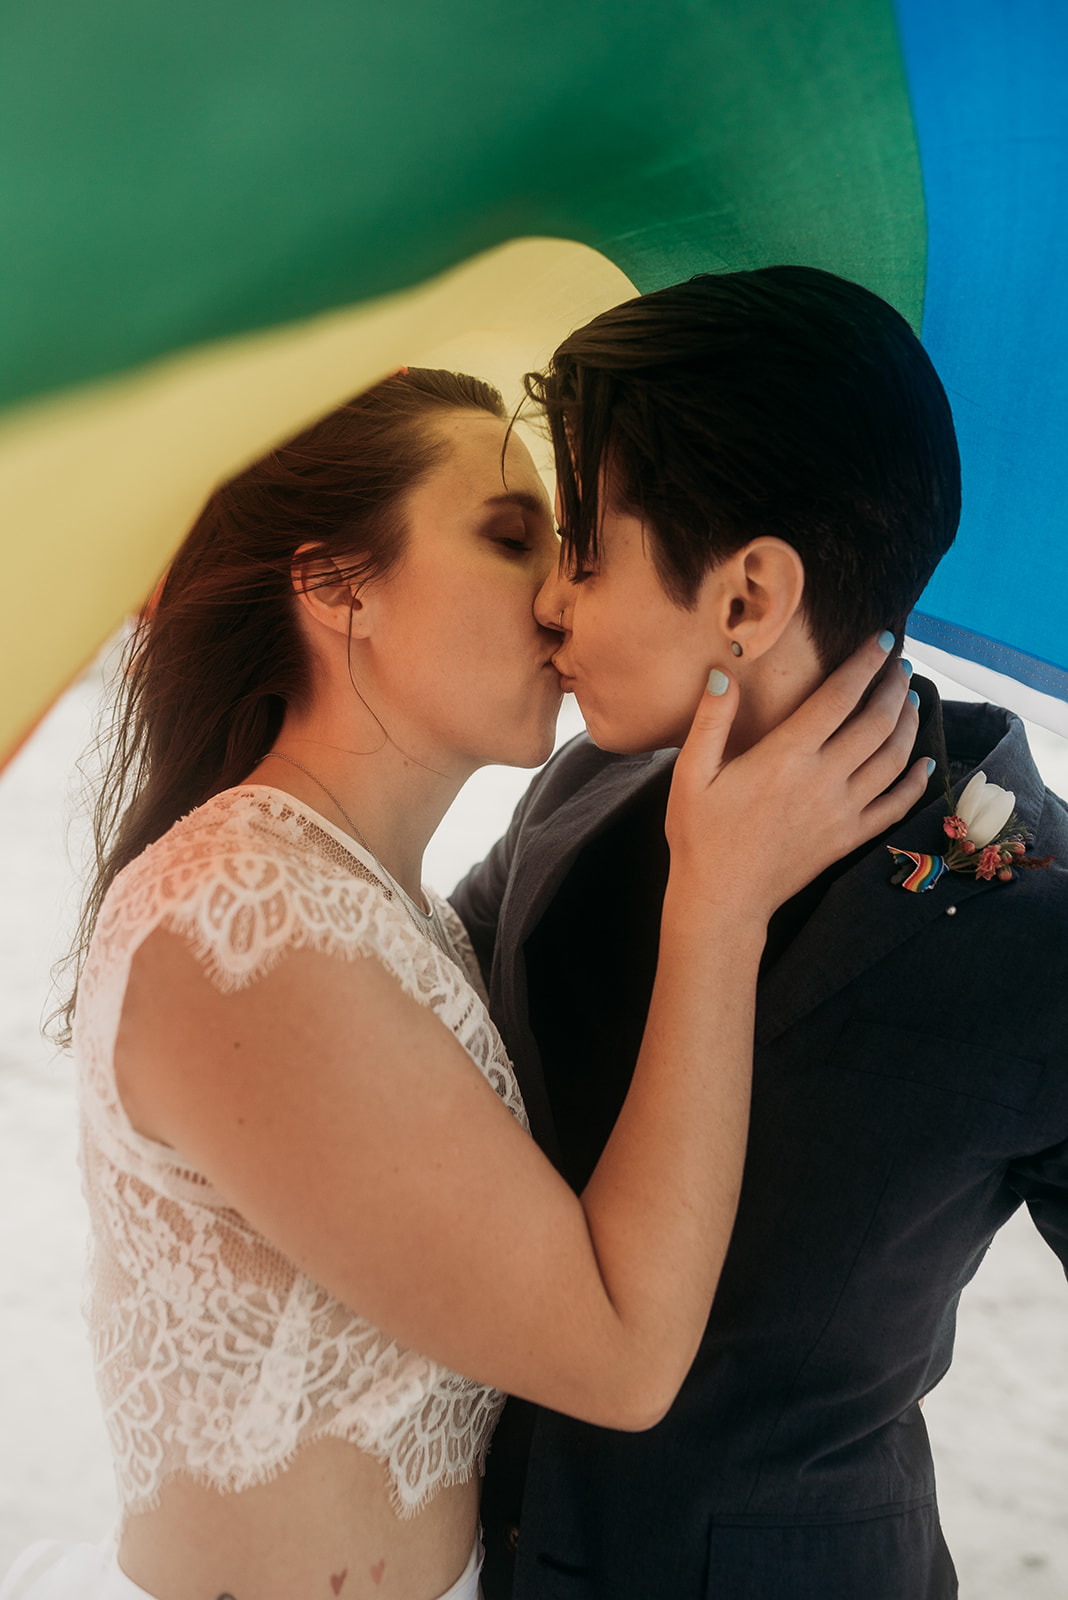 Emily Burns Photography lesbian gay same-sex couple wedding marriage America American Dancing With Her magazine